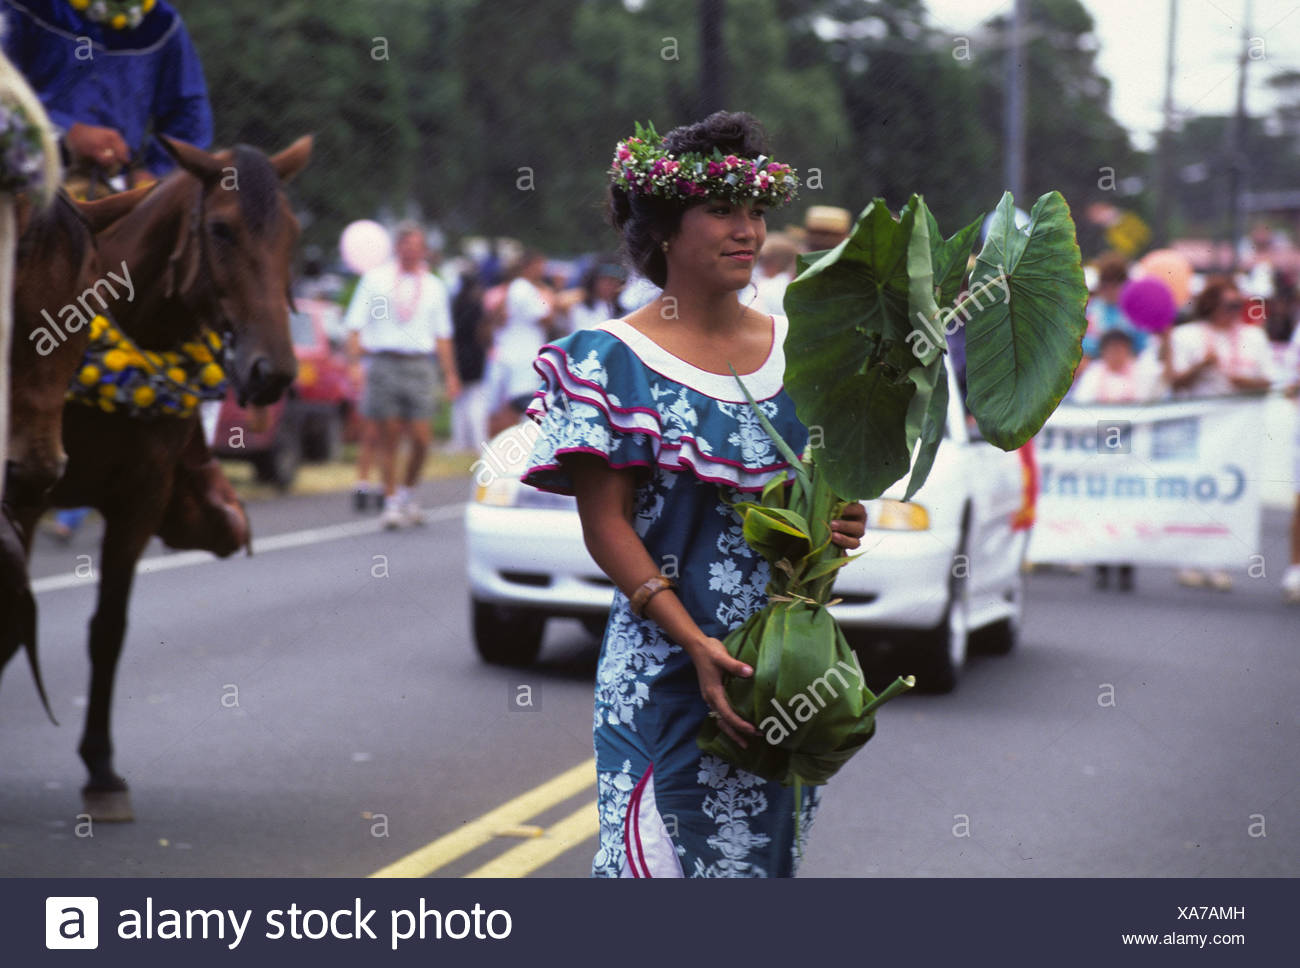 Woman carries culturally significant kalo (taro) plant during parade as part of Aloha Week Festivals, Big Island - Stock Image